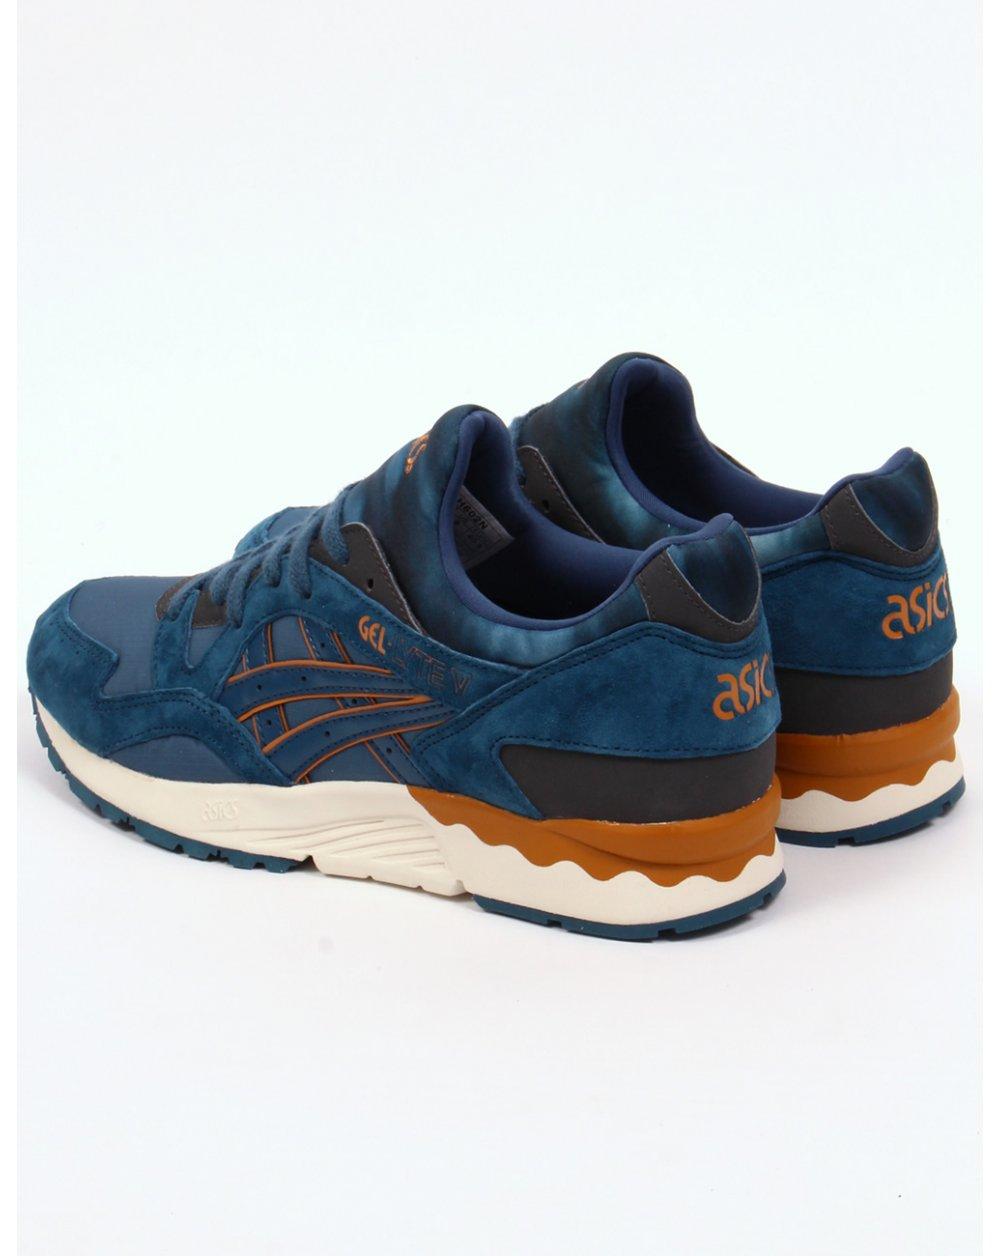 asics gel lyte v trainers legion blue 5 shoes runners sneakers. Black Bedroom Furniture Sets. Home Design Ideas